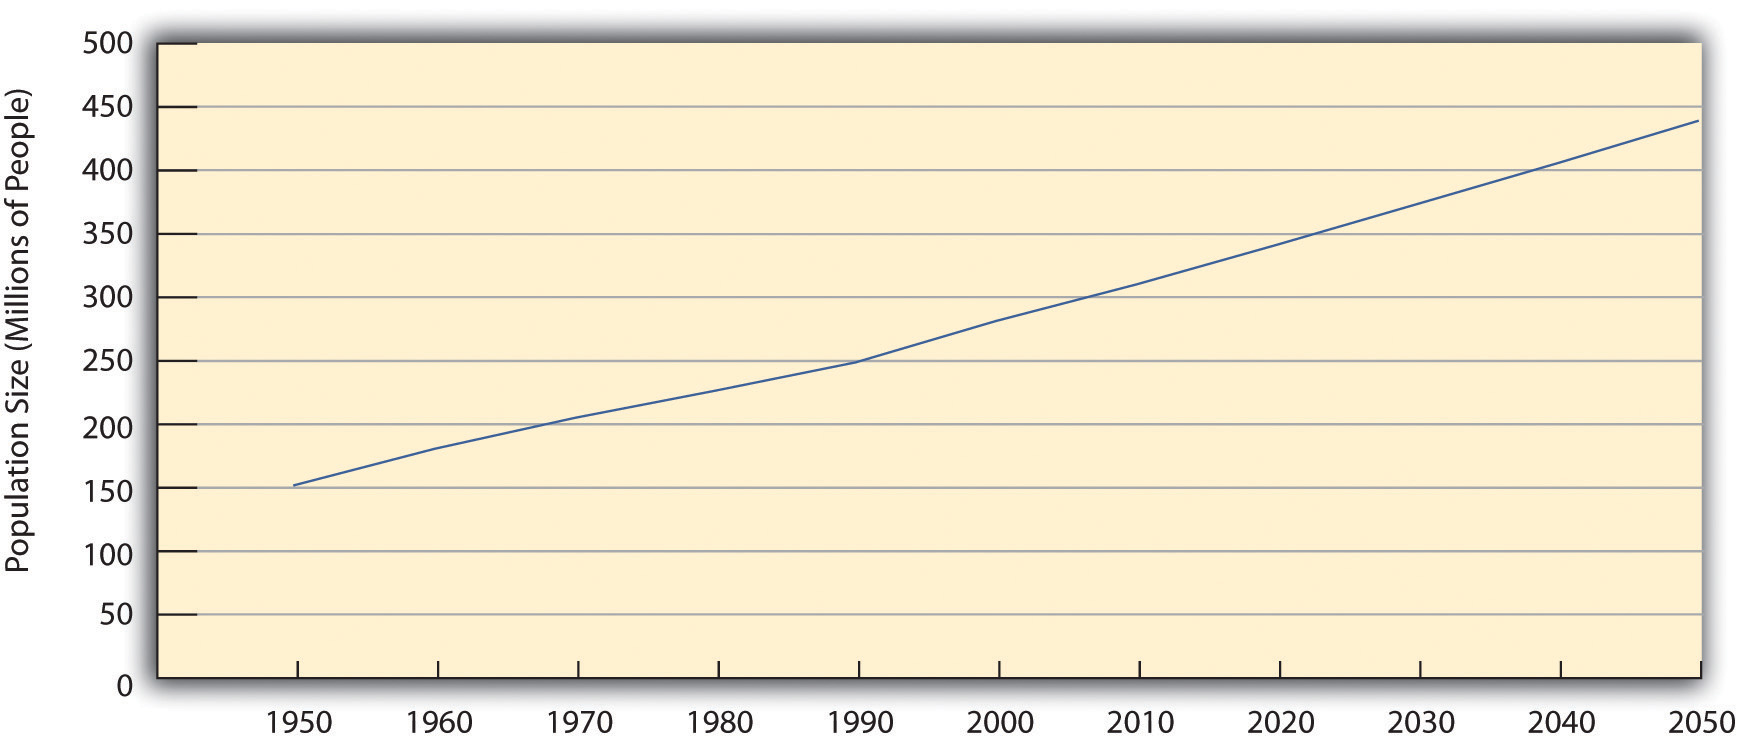 Past and Projected Size of the US Population, 1950-2050 (in Millions)